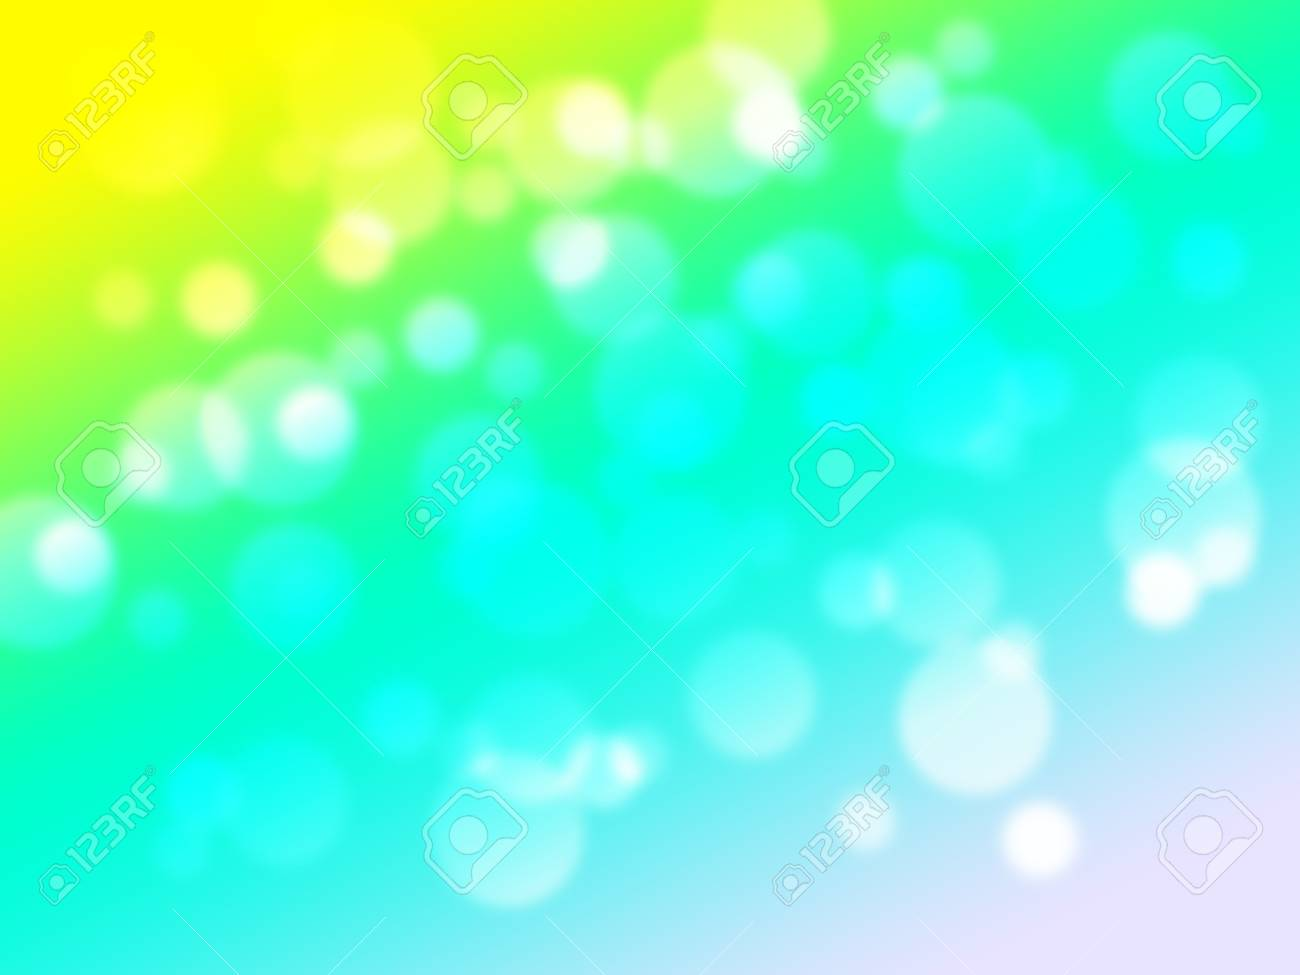 Soft Sweet Blurred Pastel Color Background With Bokeh Abstract Gradient Desktop Wallpaper Stock Photo